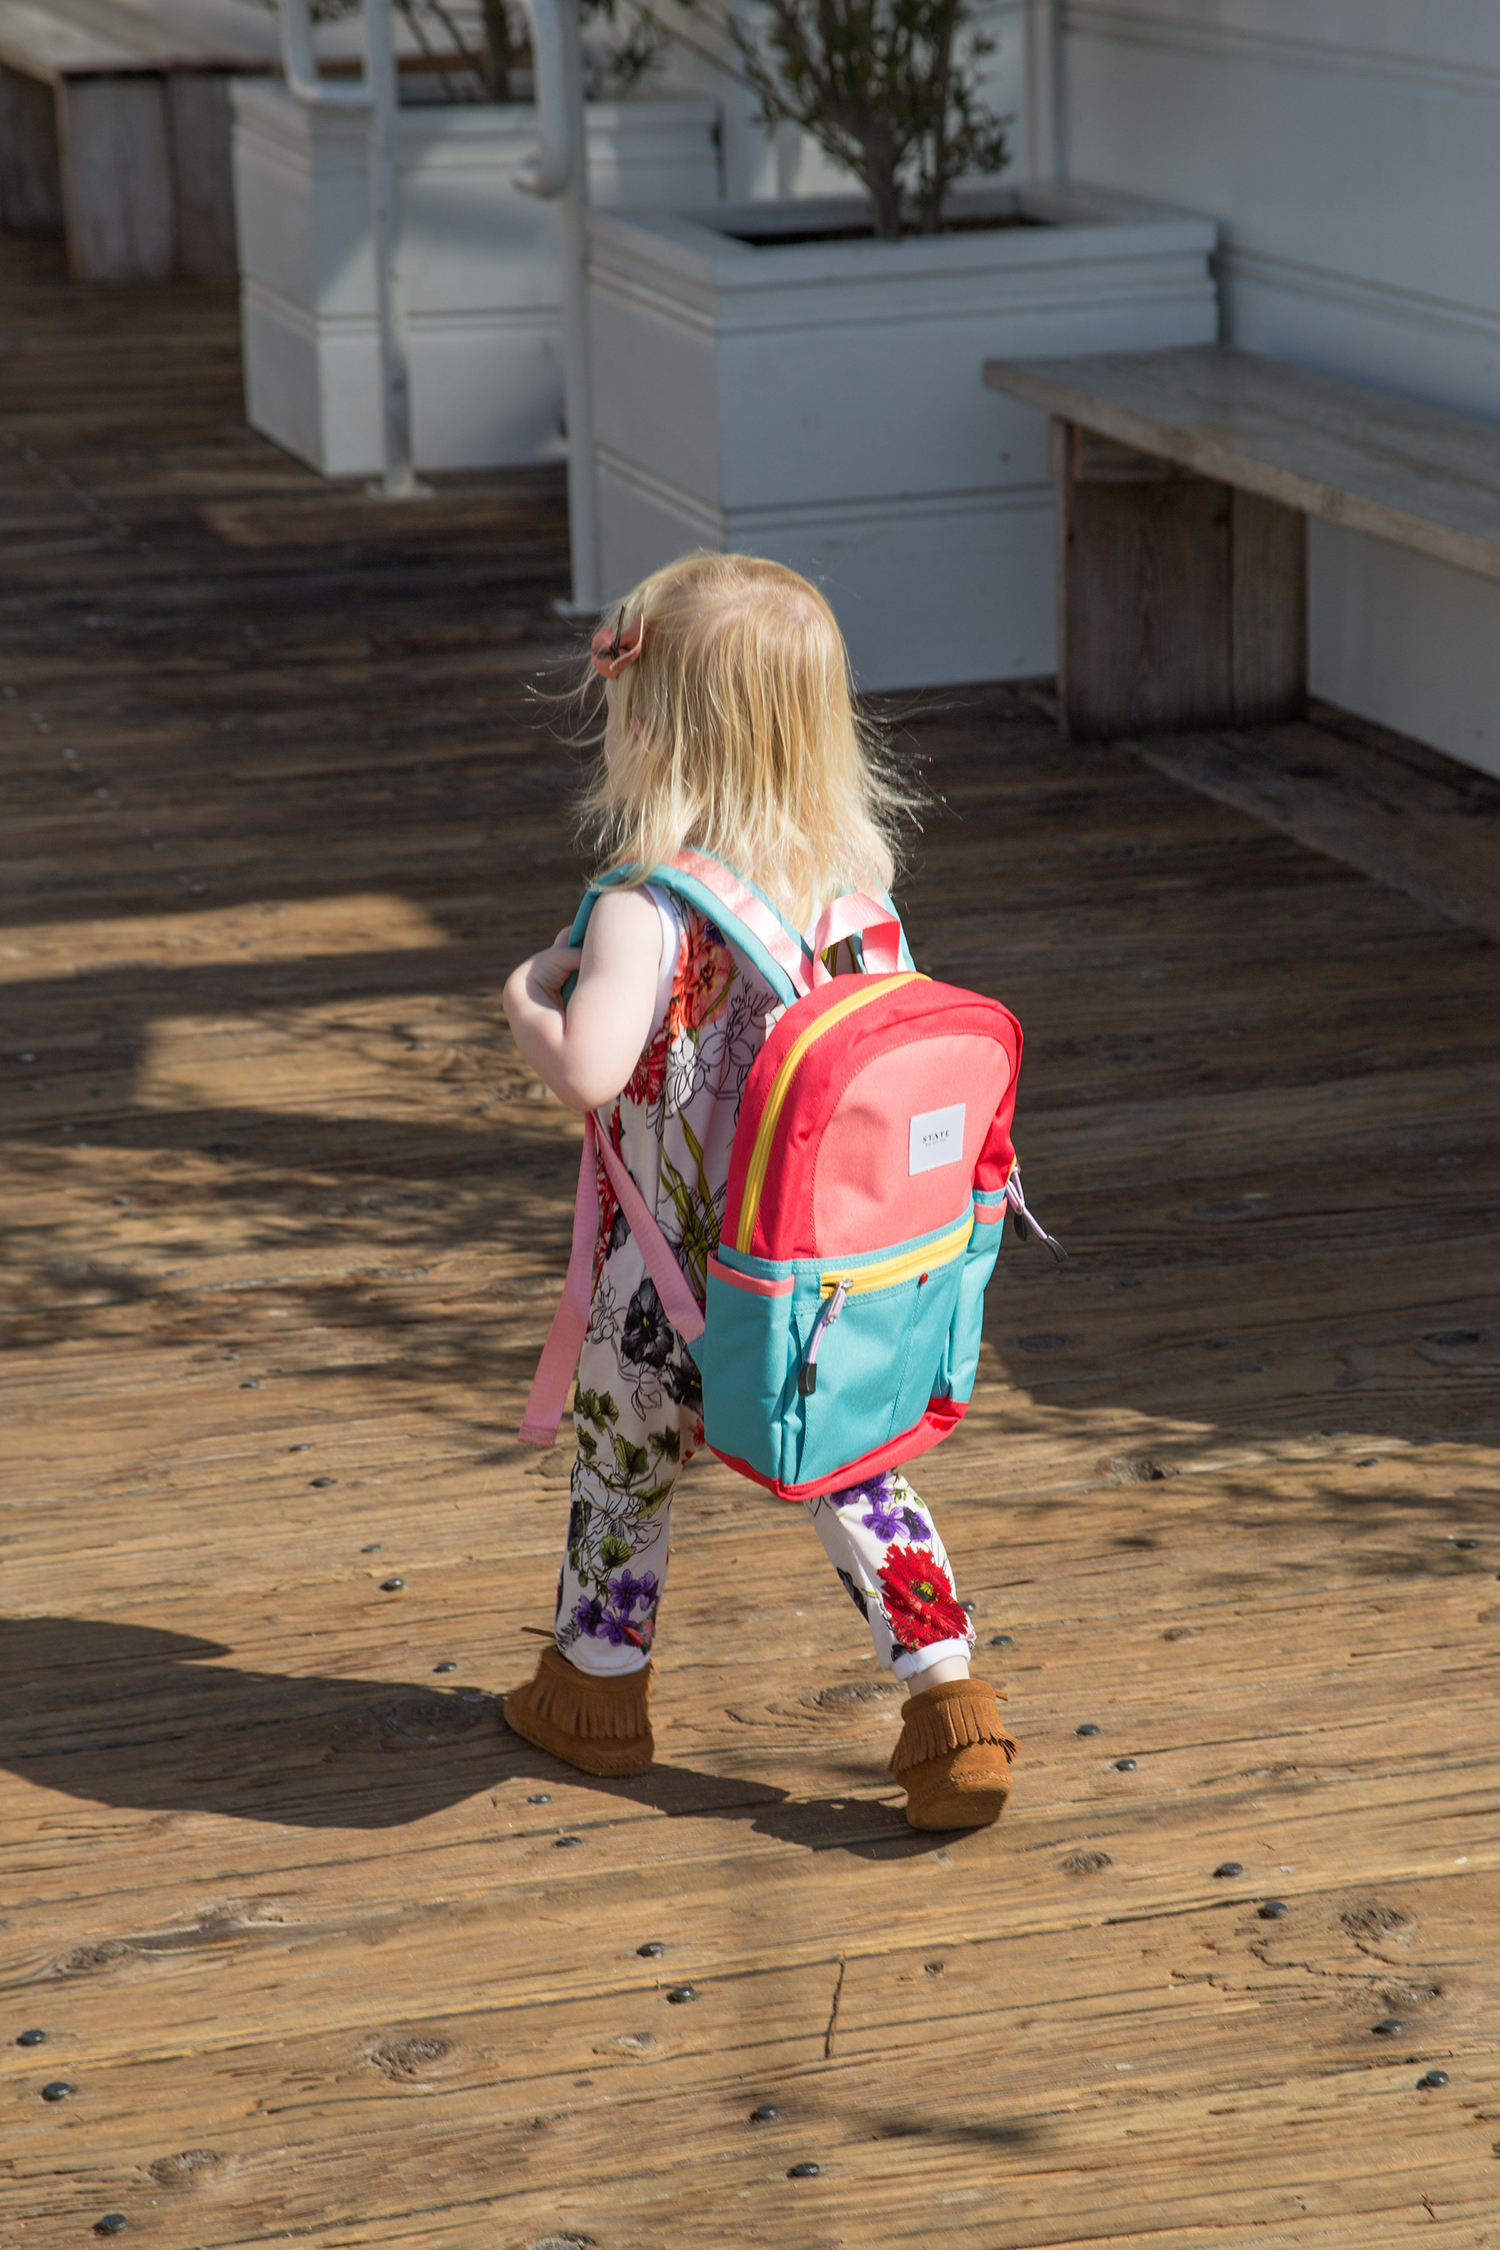 state backpack: for every backpack purchased one is given to a child in need FILLED with supplies!